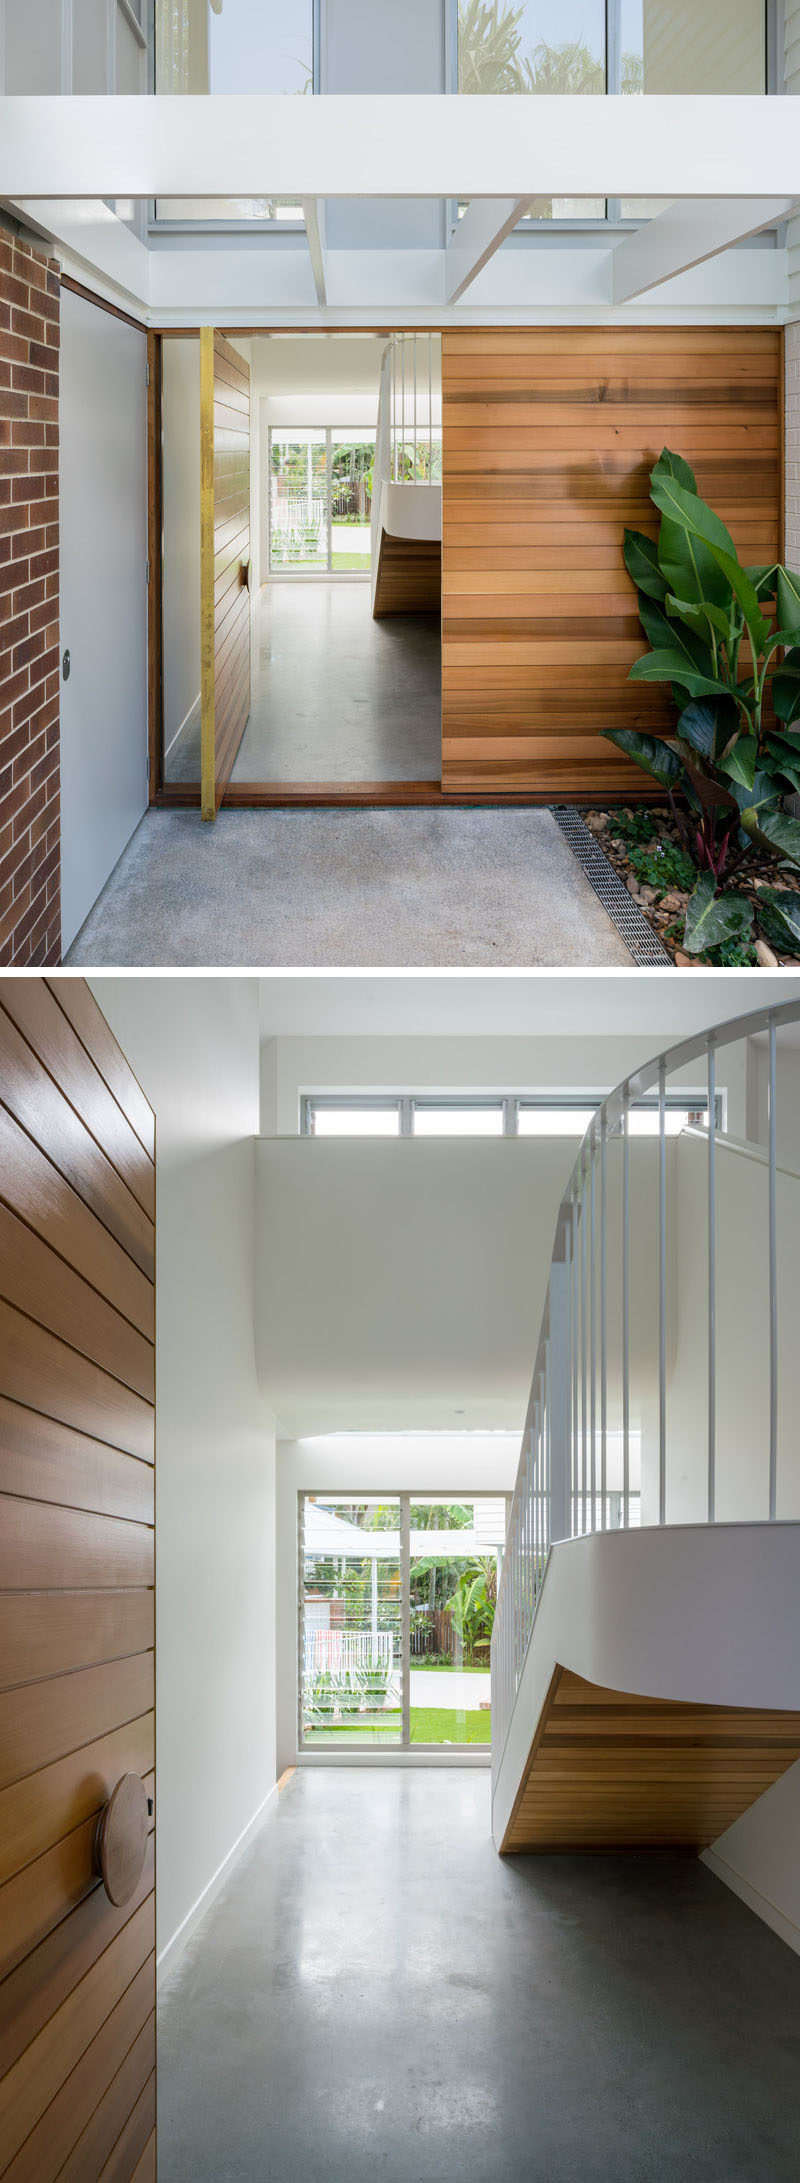 A large pivoting wood front door welcomes visitors to this contemporary home, while inside, there's the stairs leading to the upper floor, and a glimpse of the rear courtyard. #WoodFrontDoor #ModernFrontDoor #Stairs #ConcreteFloor